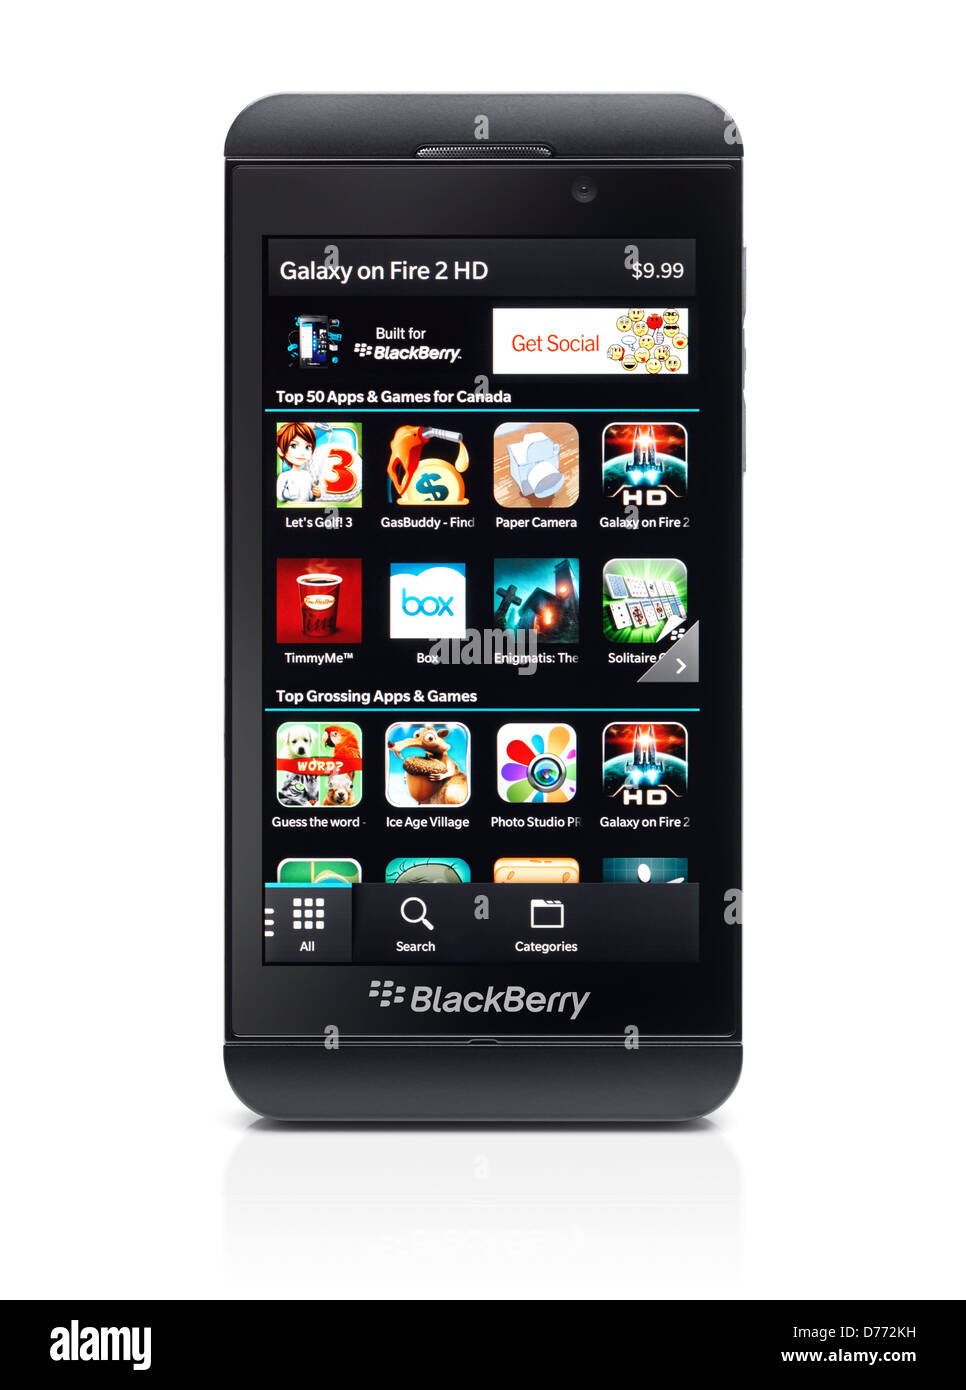 Blackberry Z10 smartphone with Blackberry World app store on its